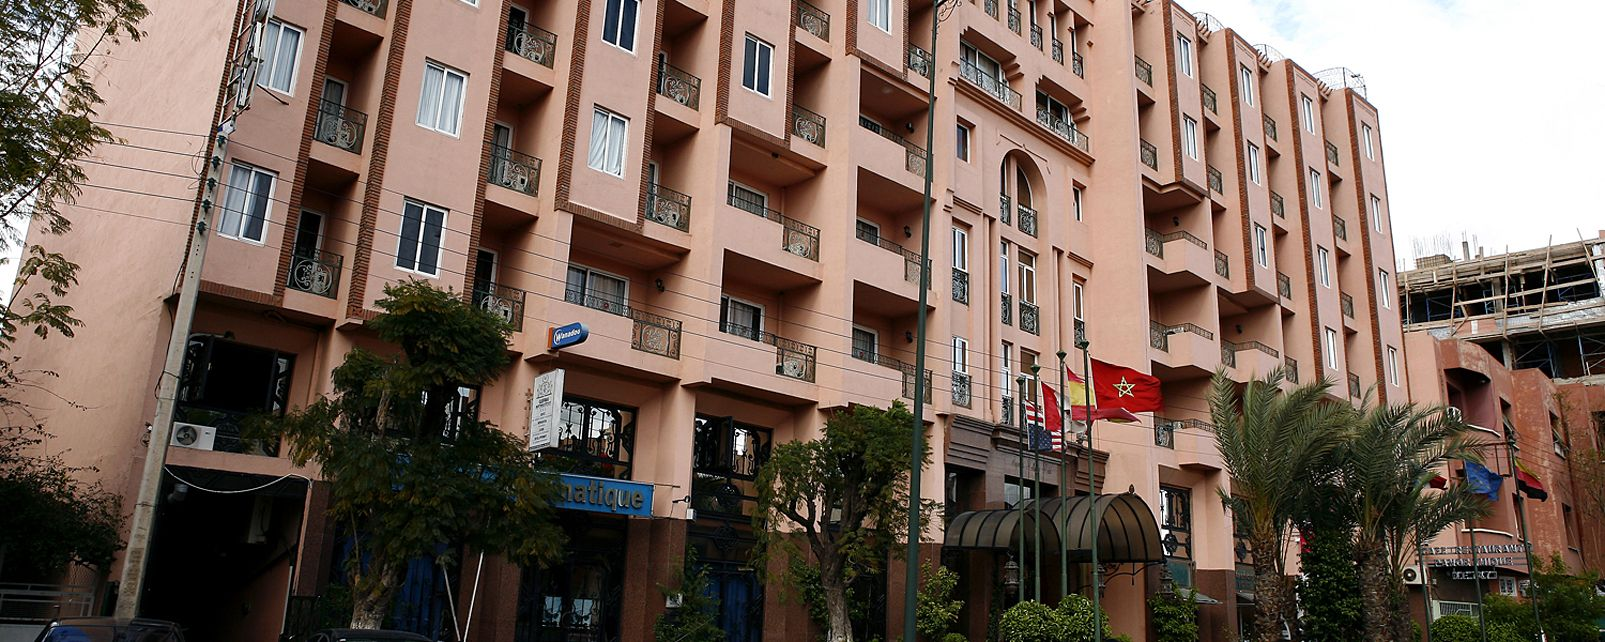 Hotel Imperial Holiday Hotel Marrakech